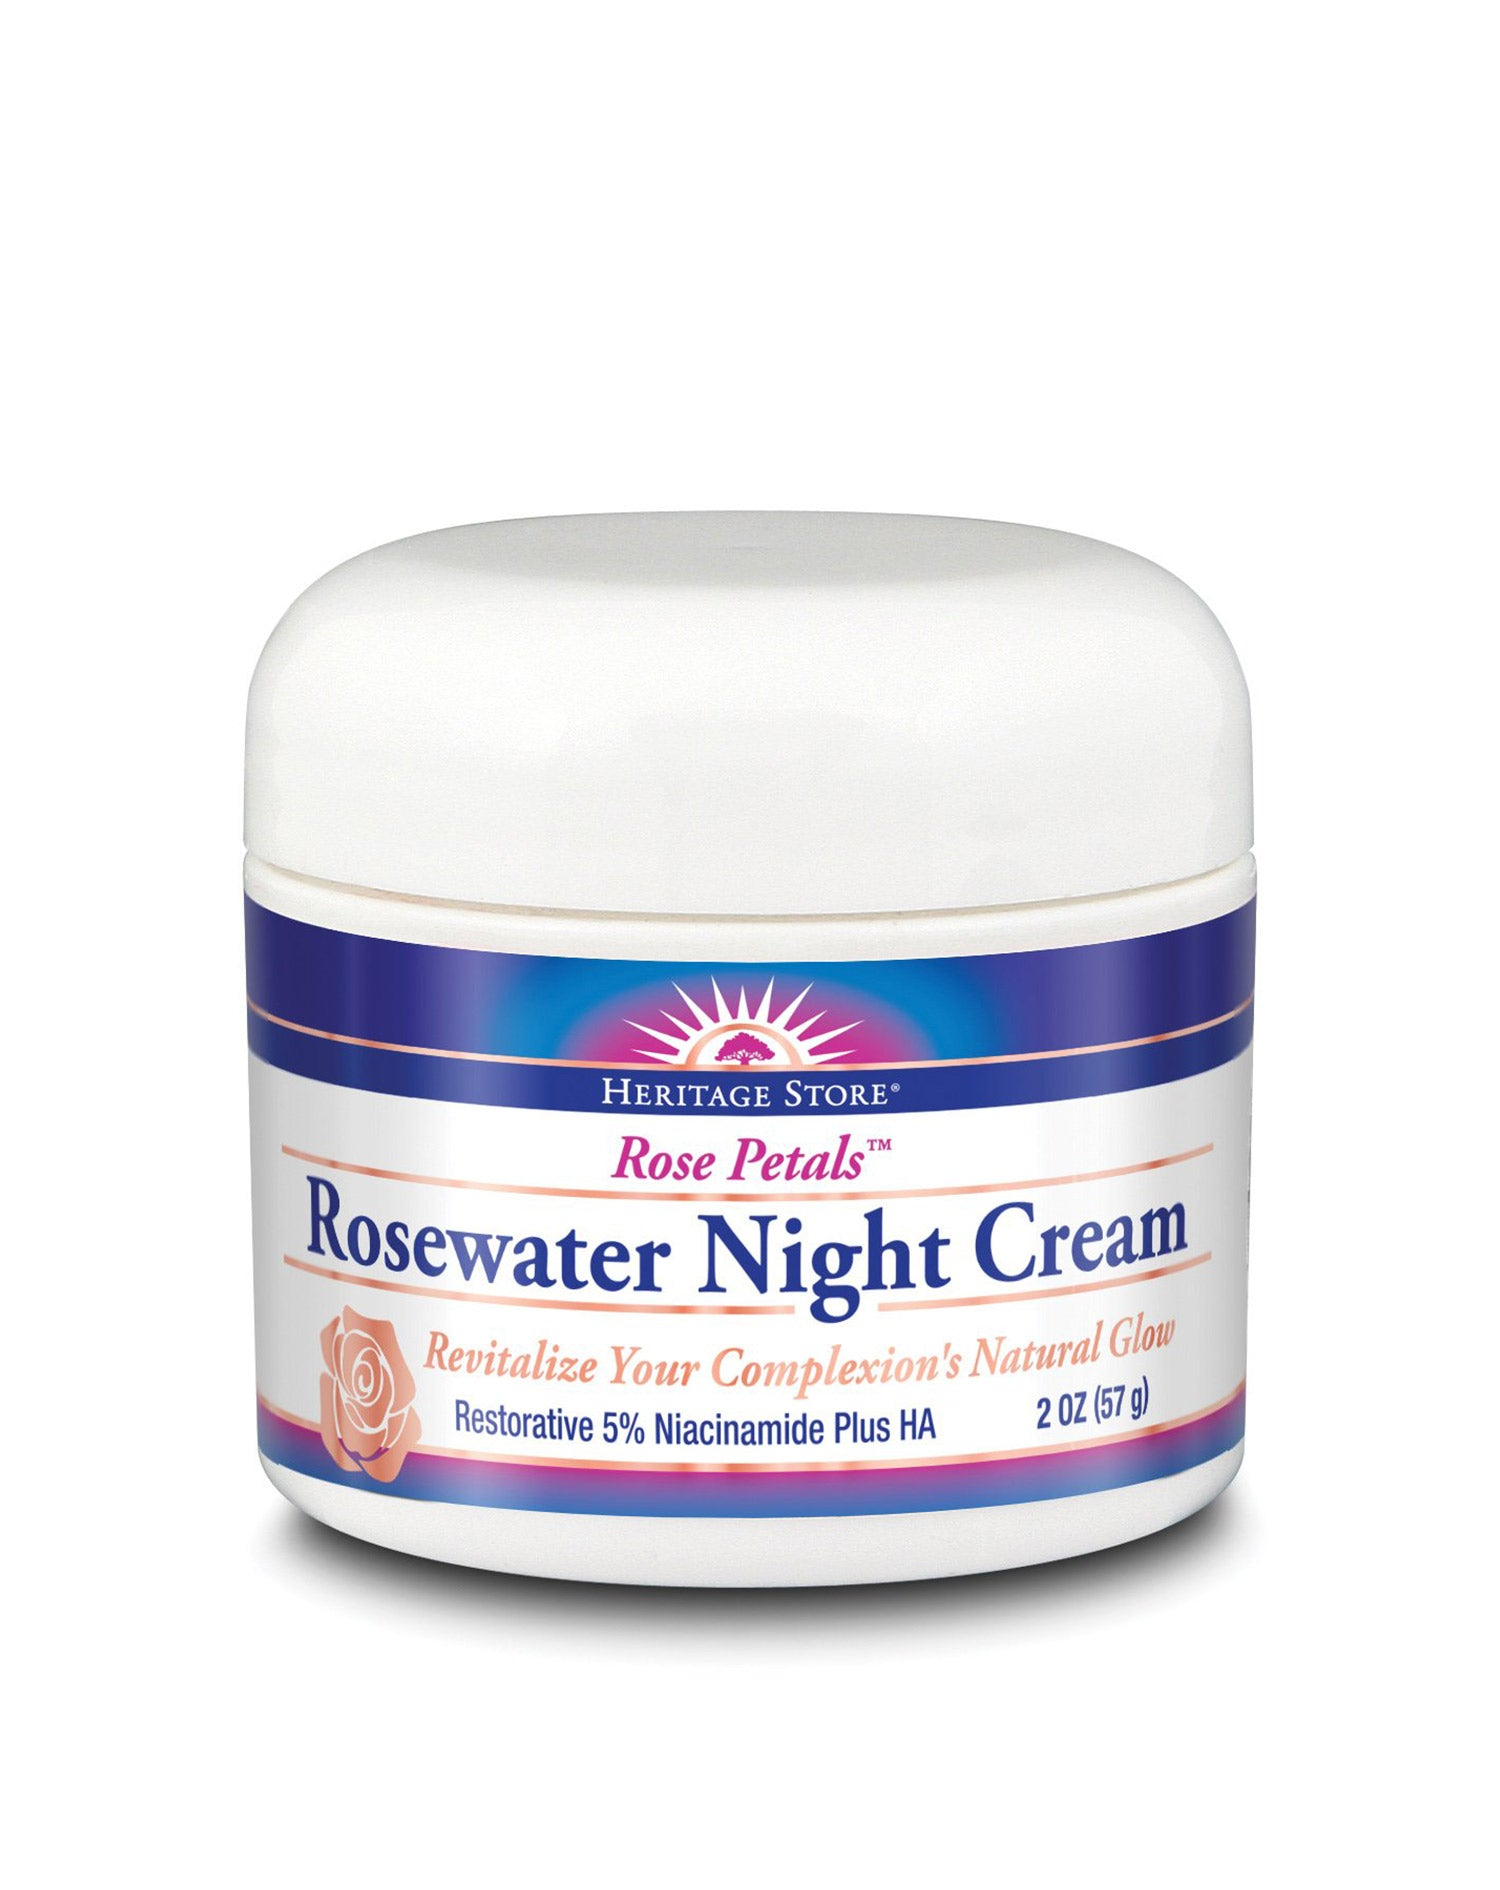 Rosewater Night Cream